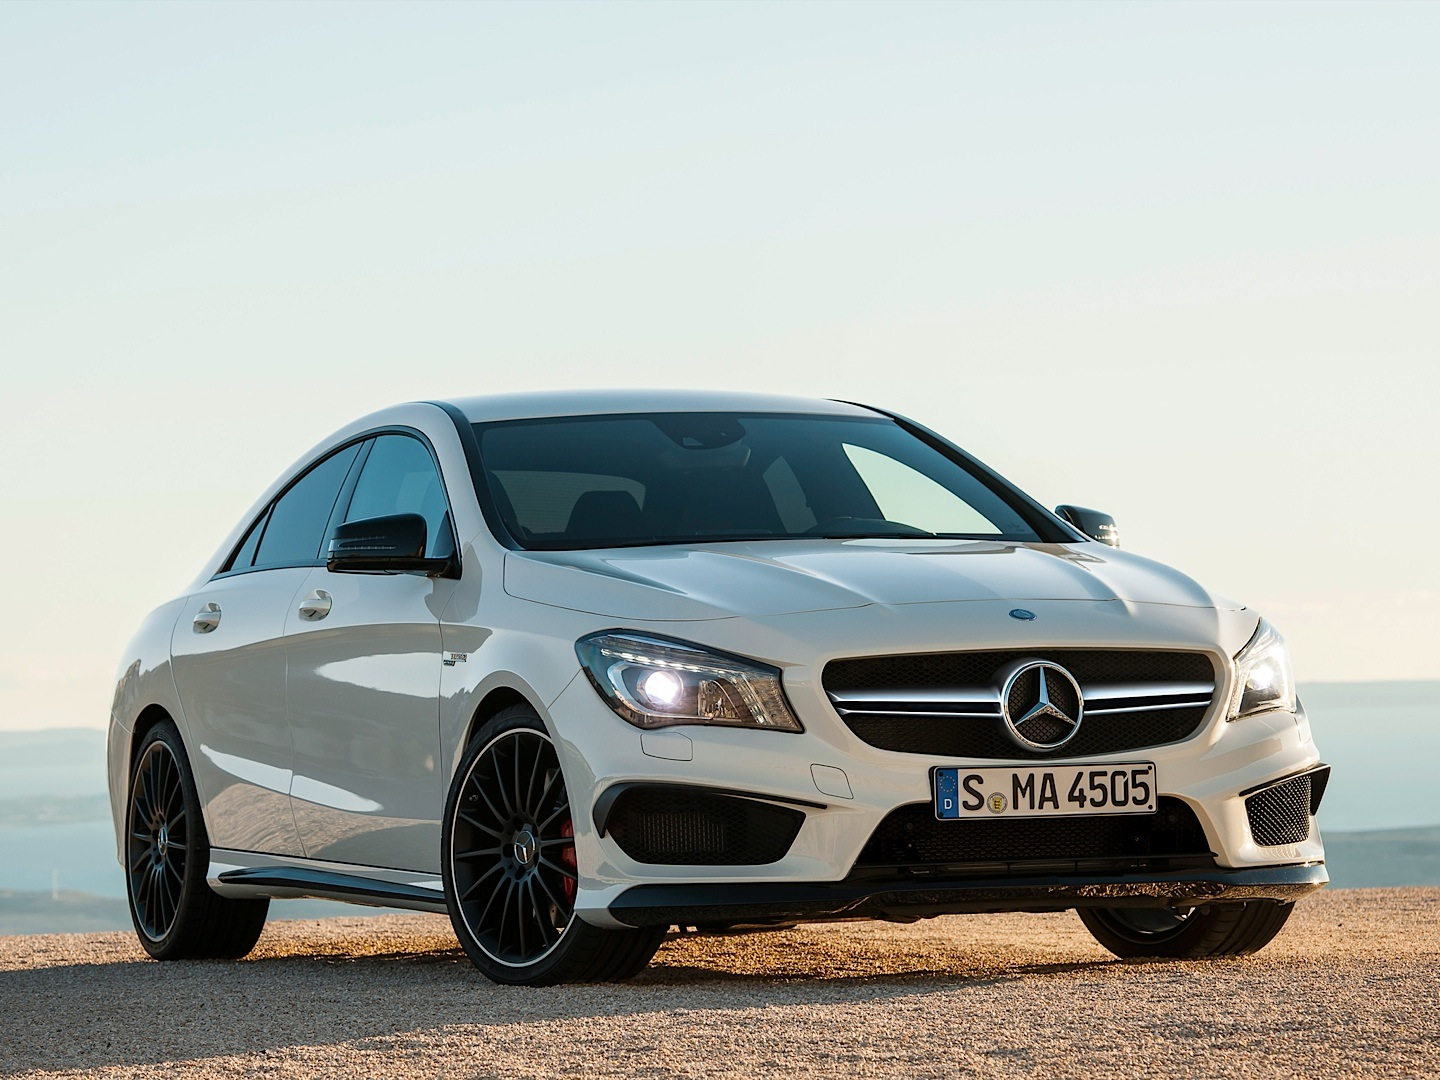 https://s1.cdn.autoevolution.com/images/news/gallery/mercedes-benz-cla-45-amg-gets-epa-rated-photo-gallery_17.jpg